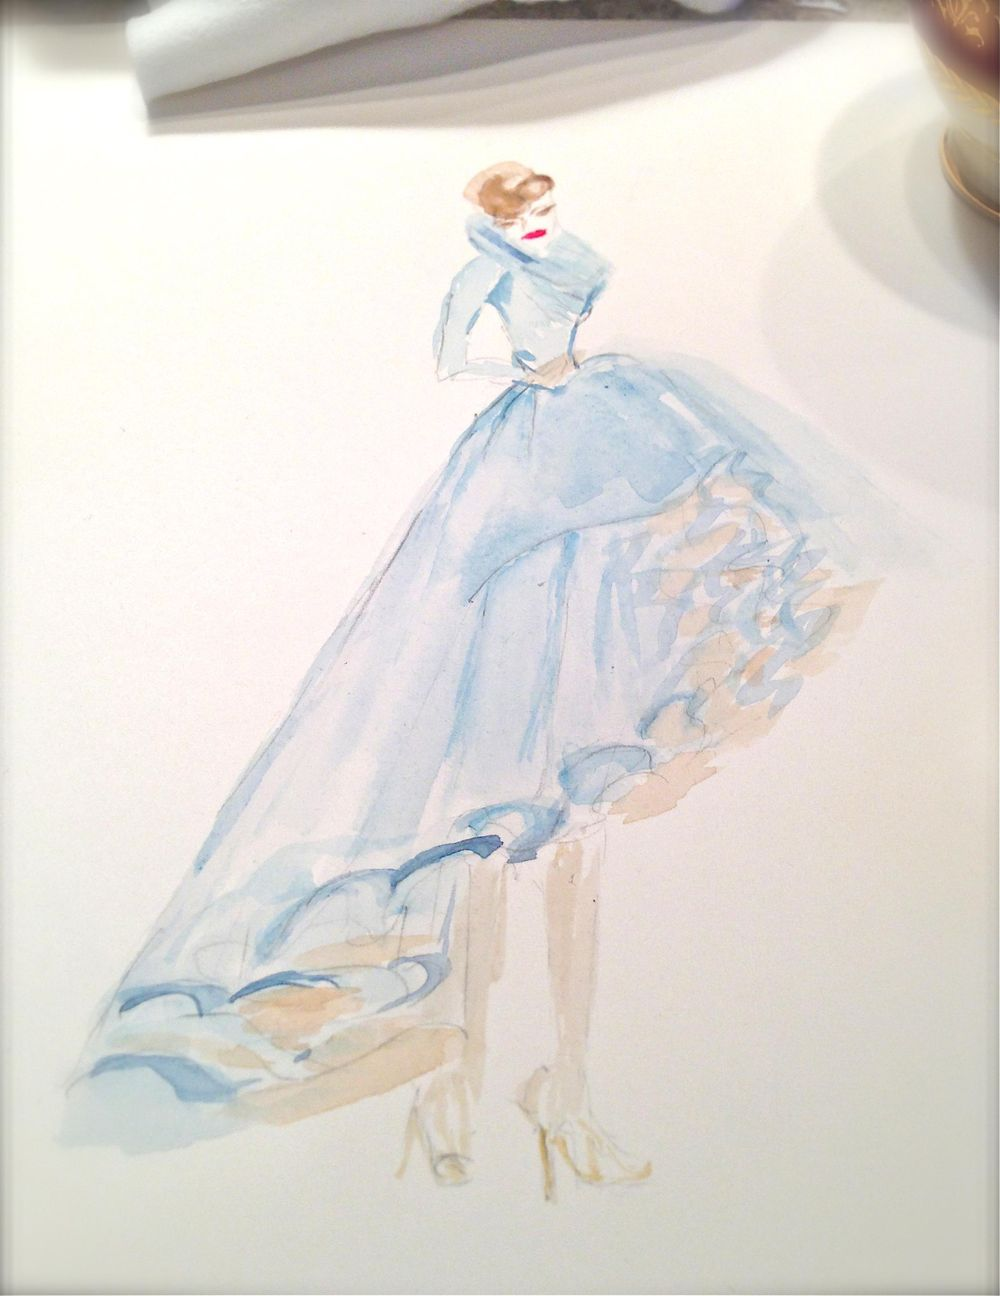 UPDATED WATERCOLOR  - Inspiration Antoinette - image 5 - student project